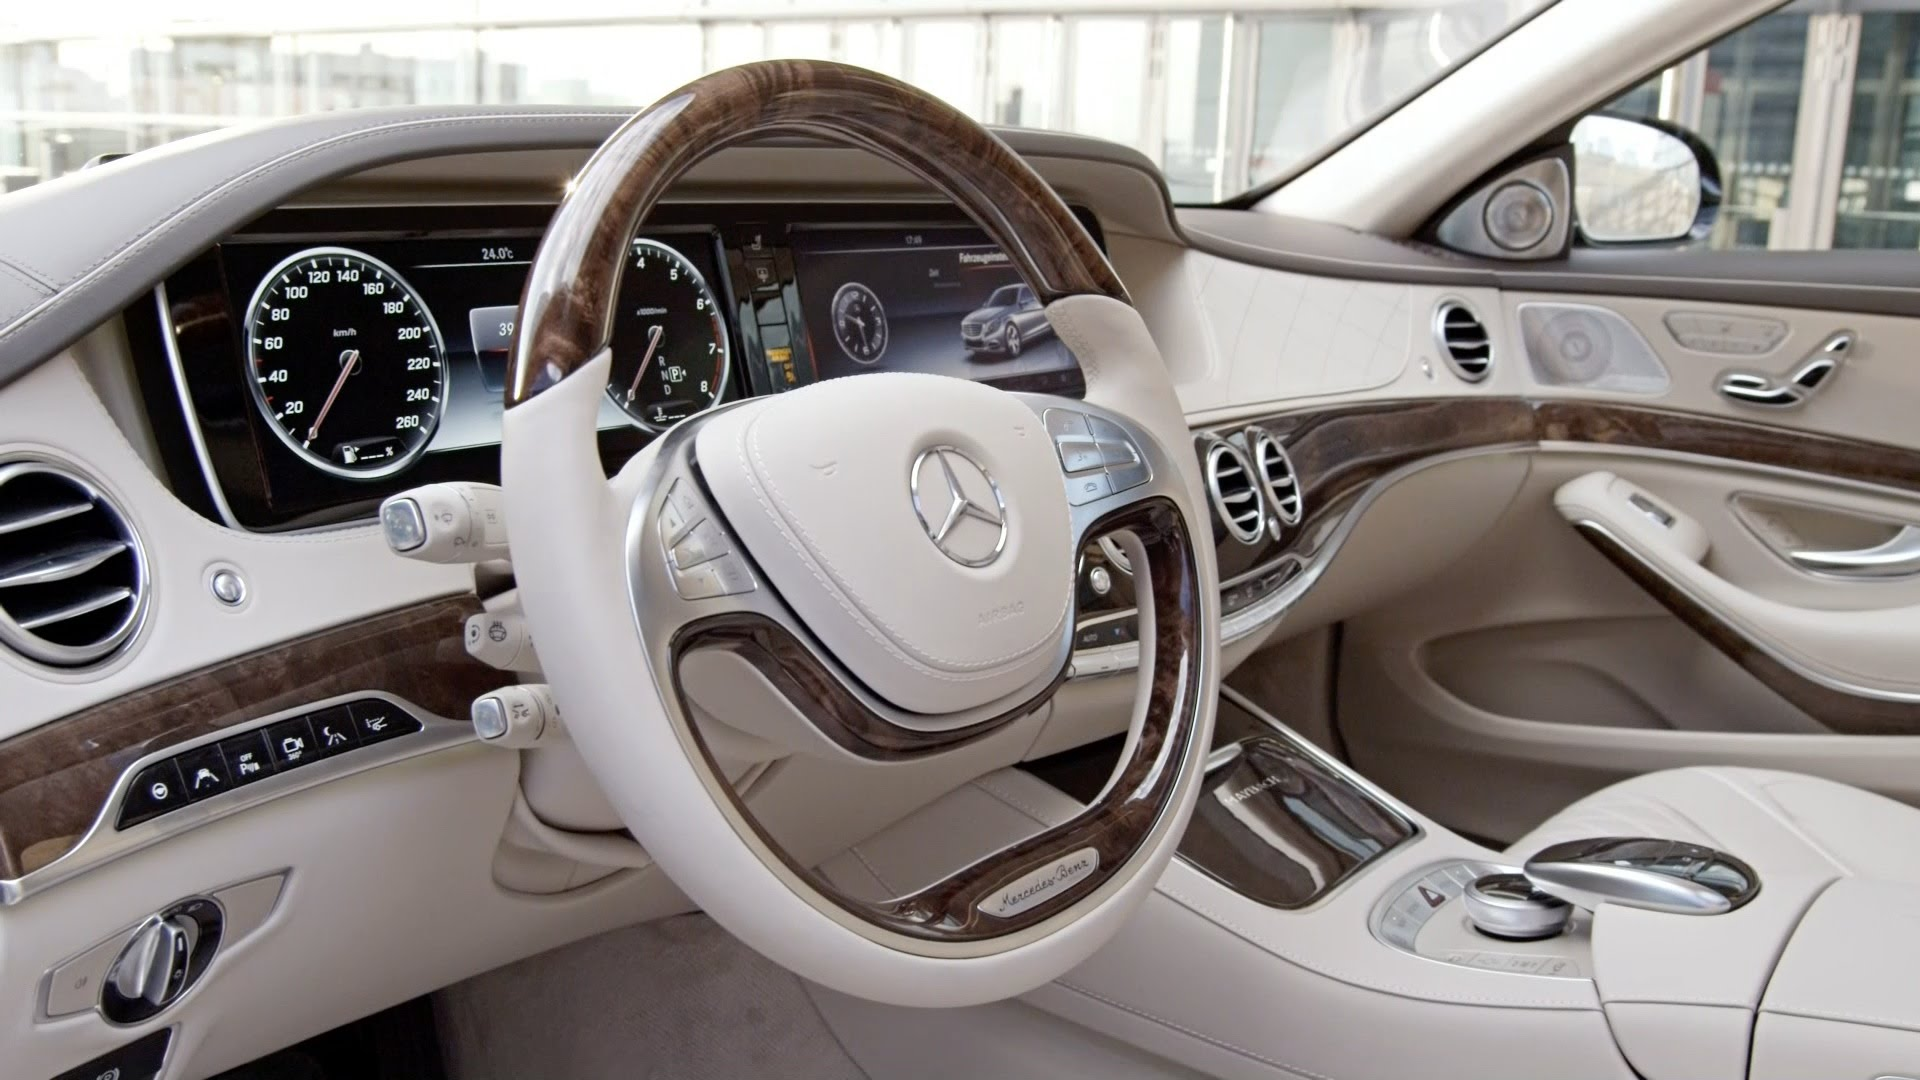 Mercedes-Maybach S-Class Wallpapers hd